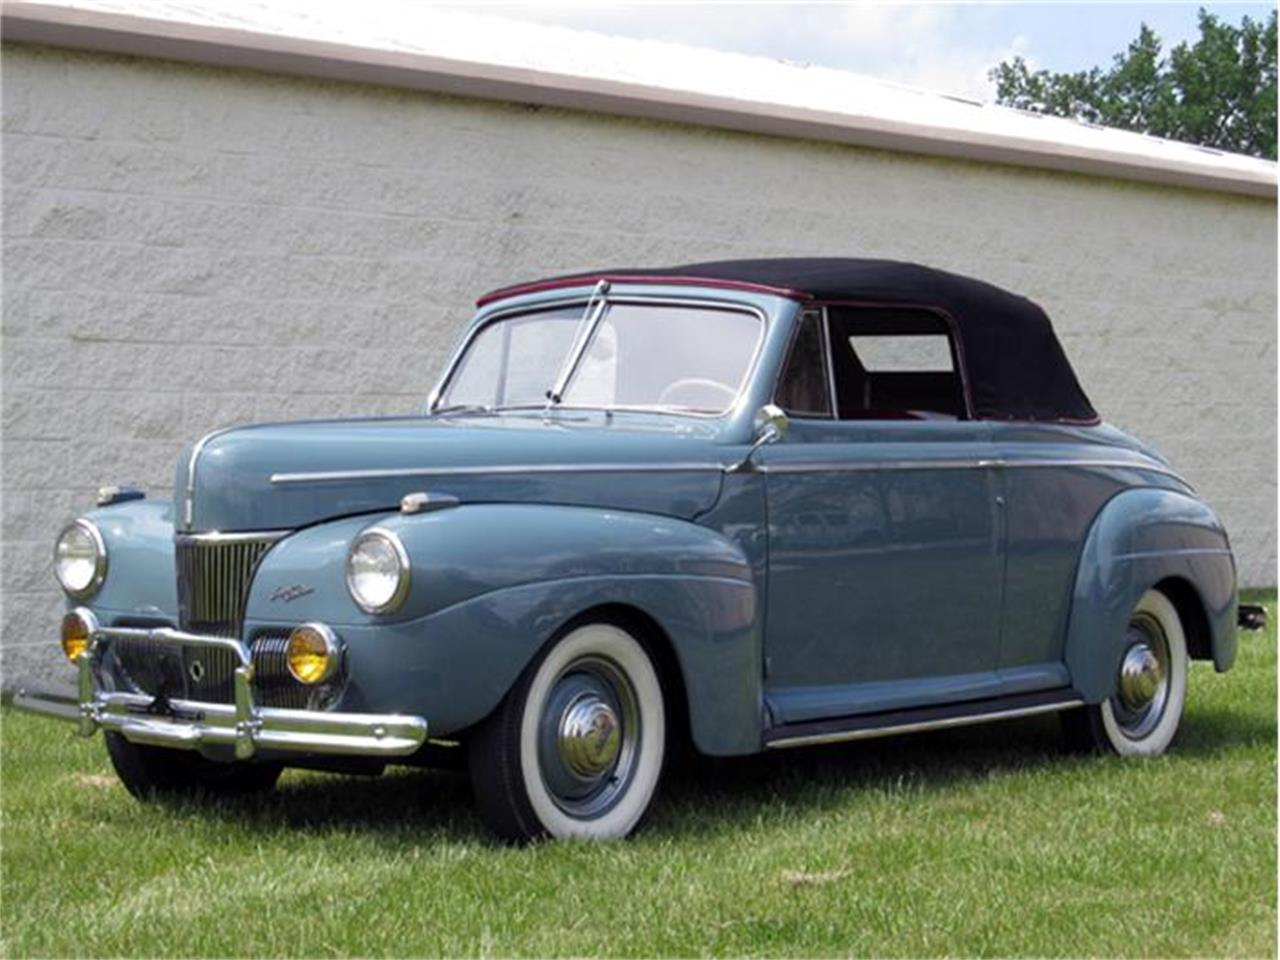 Large Picture of '41 Ford Super Deluxe - $39,900.00 - 75W7